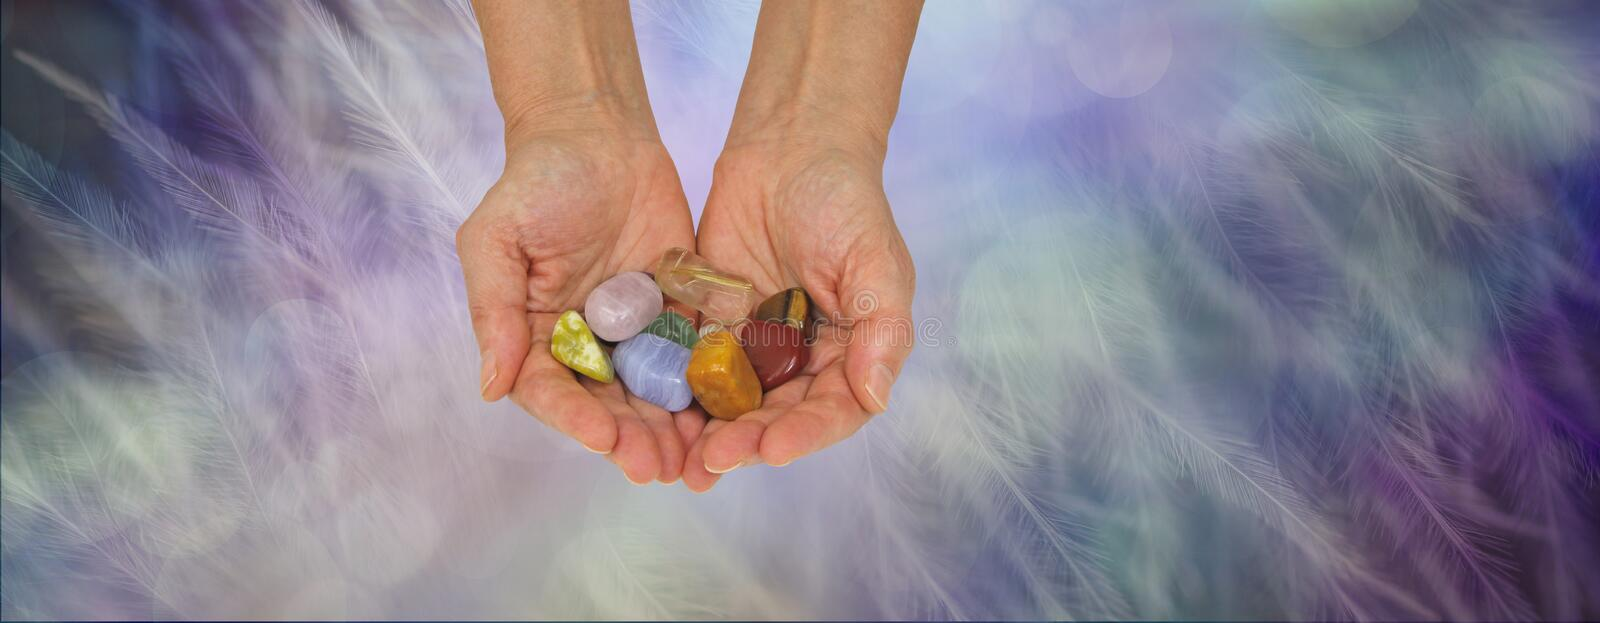 Crystal healing practitioner offering selection of tumbled healing stones stock image